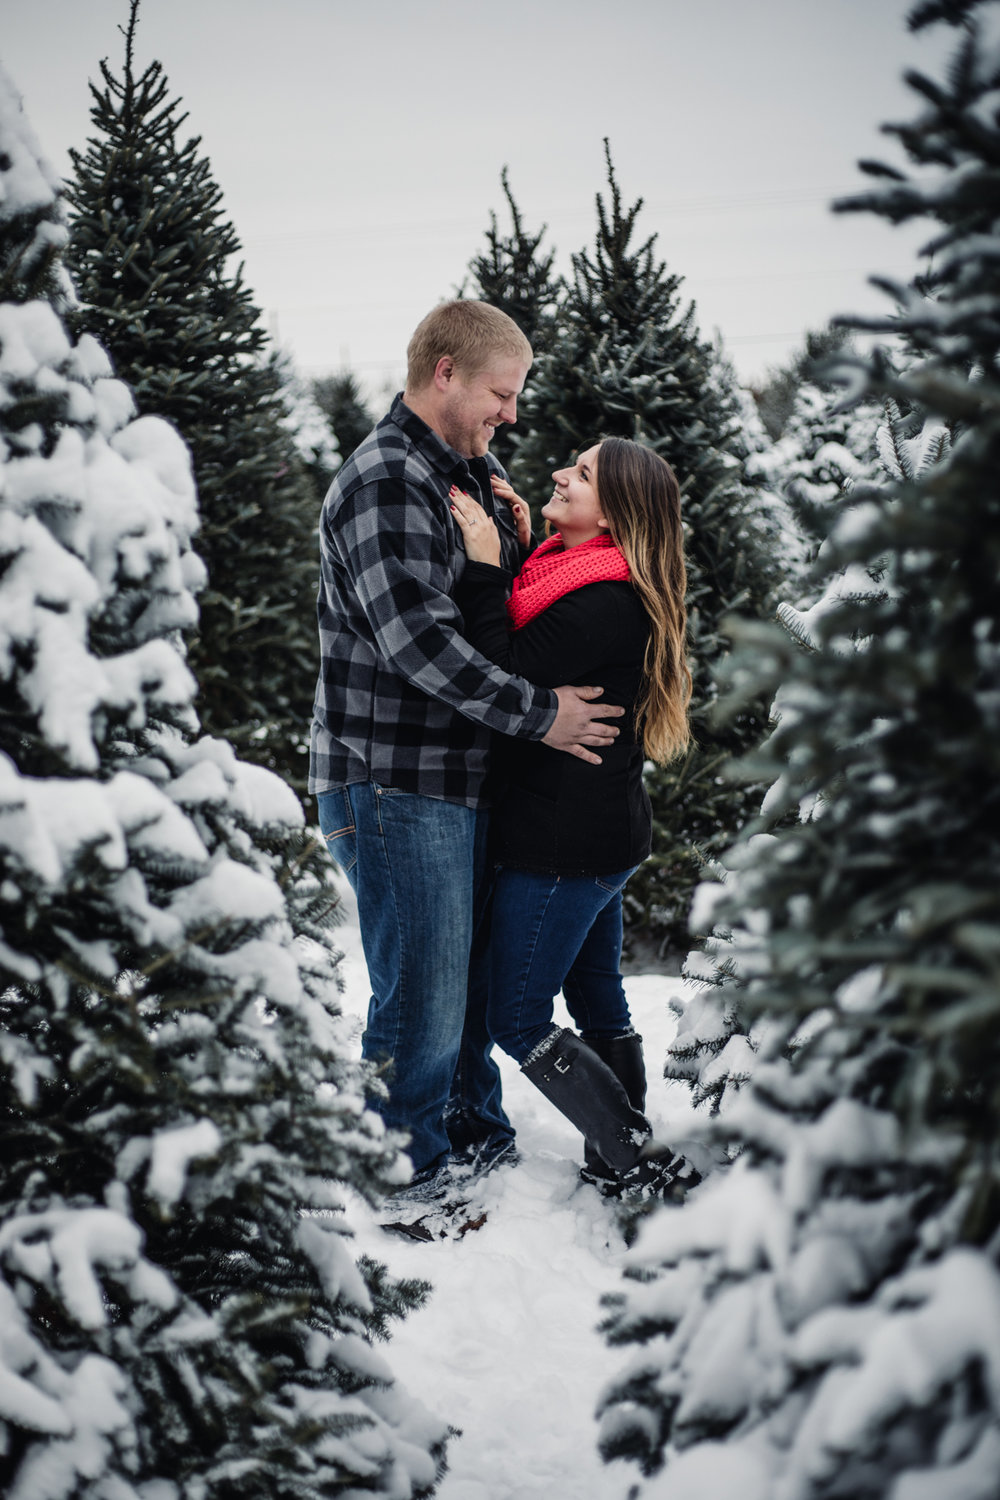 Christmas Tree Farm Engagement - Holiday Engagement - Winter Engagement